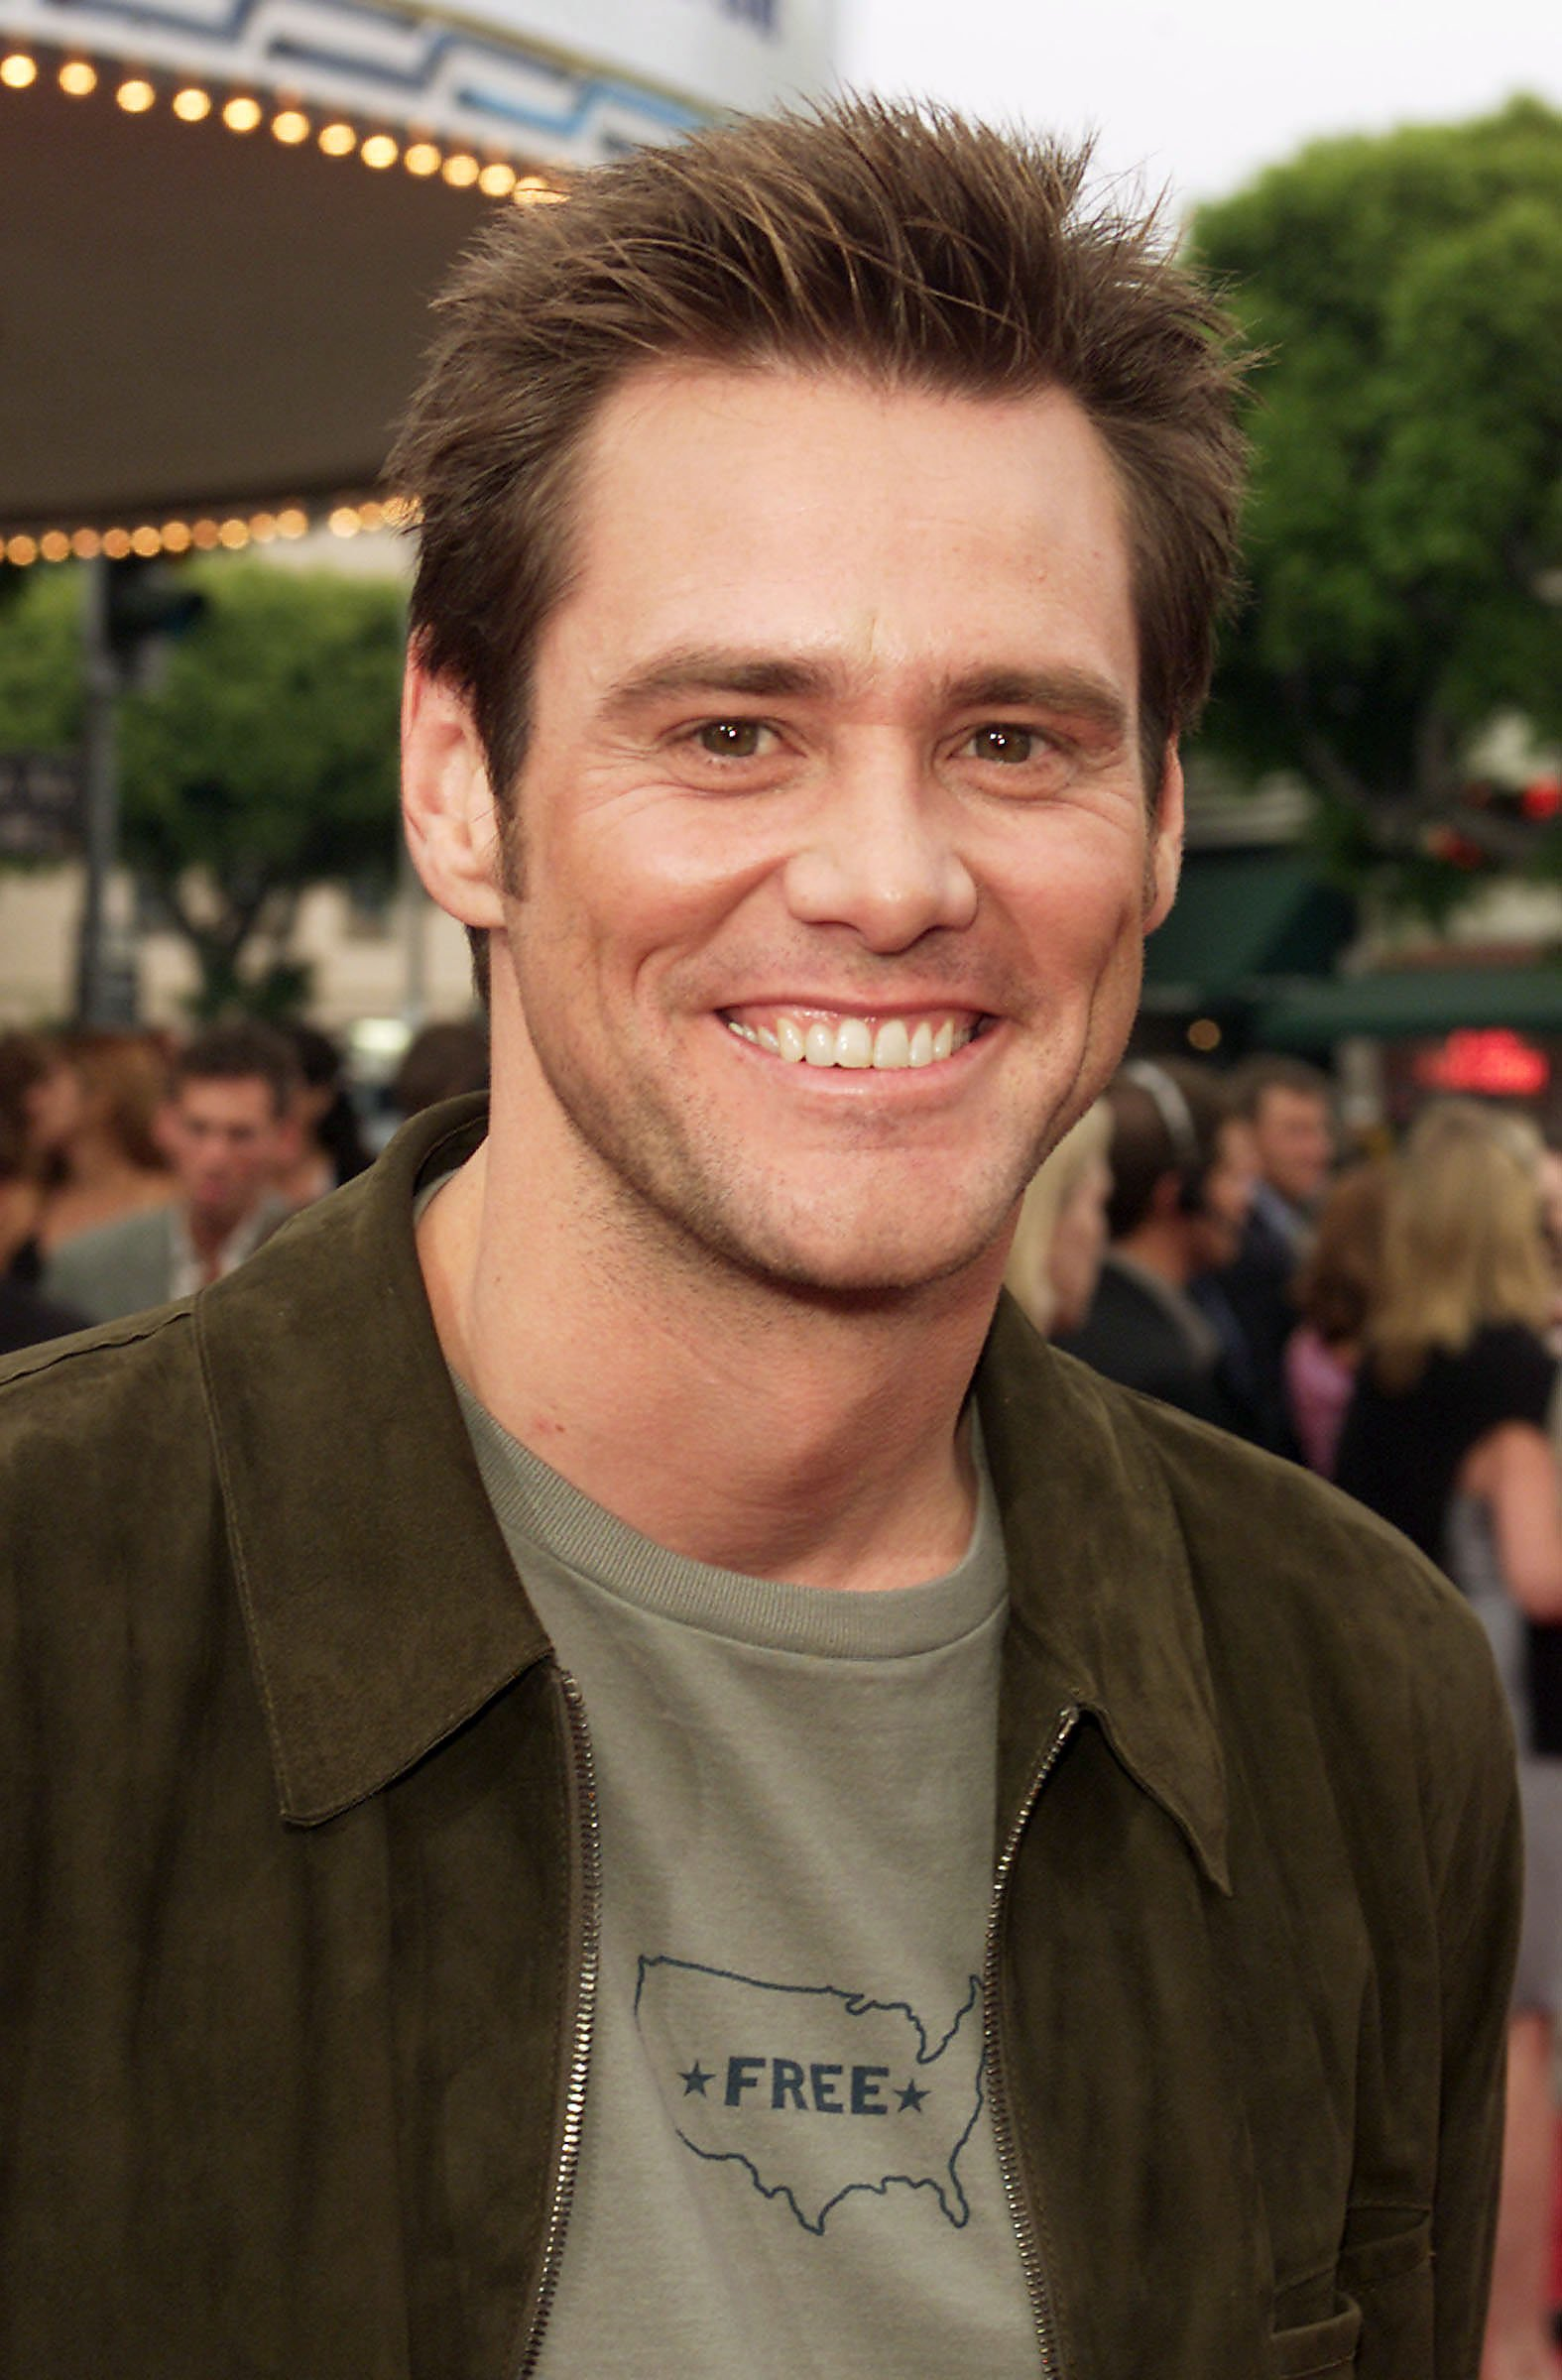 Jim Carrey at the premiere of 'Me, Myself & Irene' at the Village Theater in Westwood, Ca. onJune 15, 2000. | Source: Getty Images.